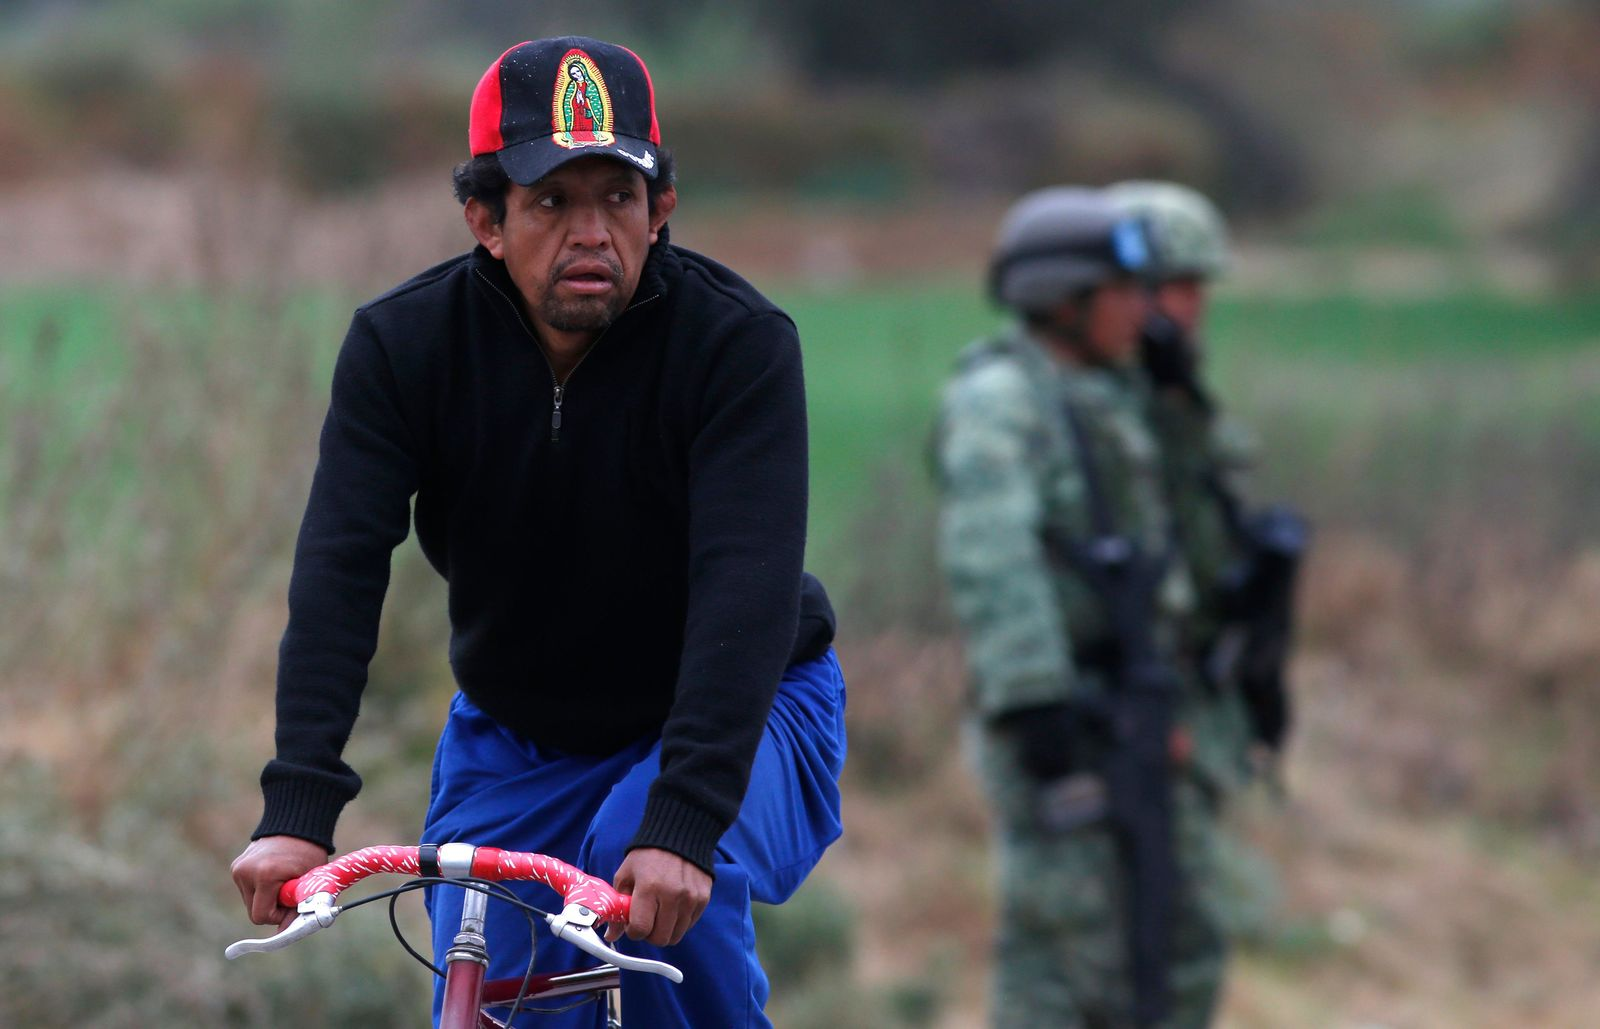 A cyclist passes soldiers who guard the site where a gas pipeline exploded two days prior, in the village of Tlahuelilpan, Mexico, Sunday Jan. 20, 2019. A massive fireball that engulfed locals scooping up fuel spilling from a pipeline ruptured by thieves in central Mexico killed dozens of people and badly burned dozens more on Jan. 18. (AP Photo/Claudio Cruz)